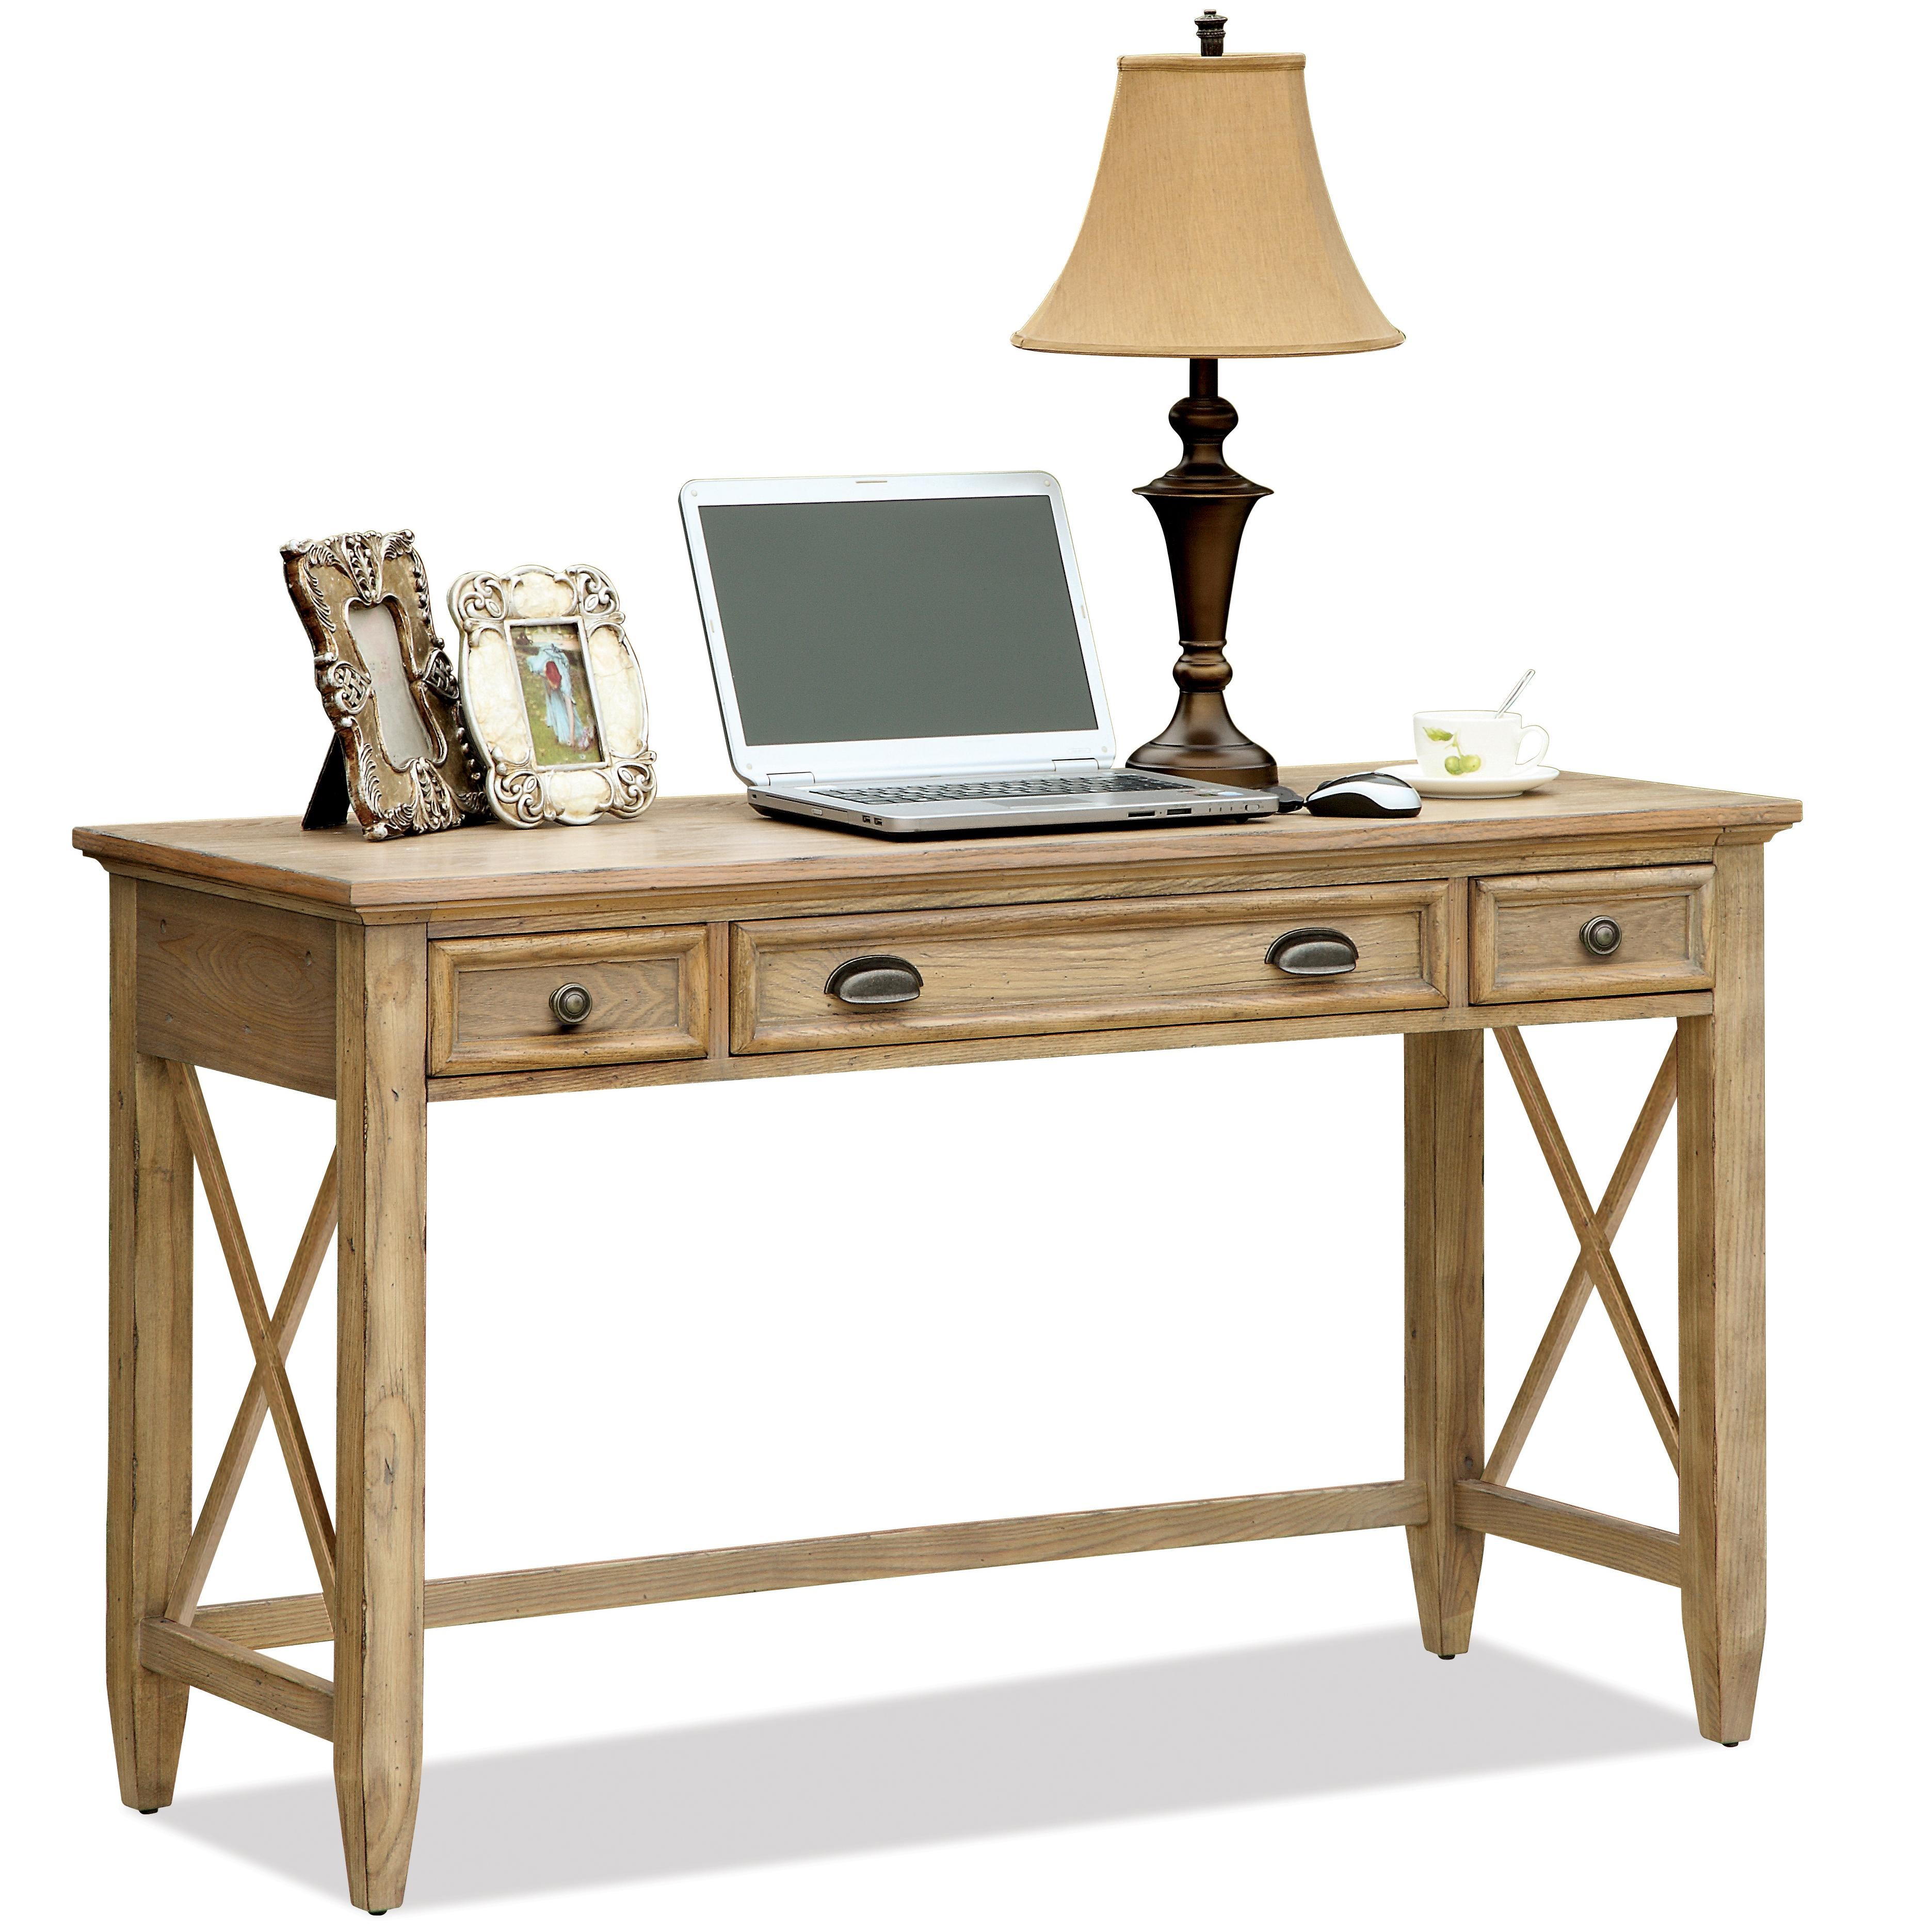 Riverside Furniture Coventry Writing Desk With 3 Drawers Outlet Powerbar Johnny Janosik